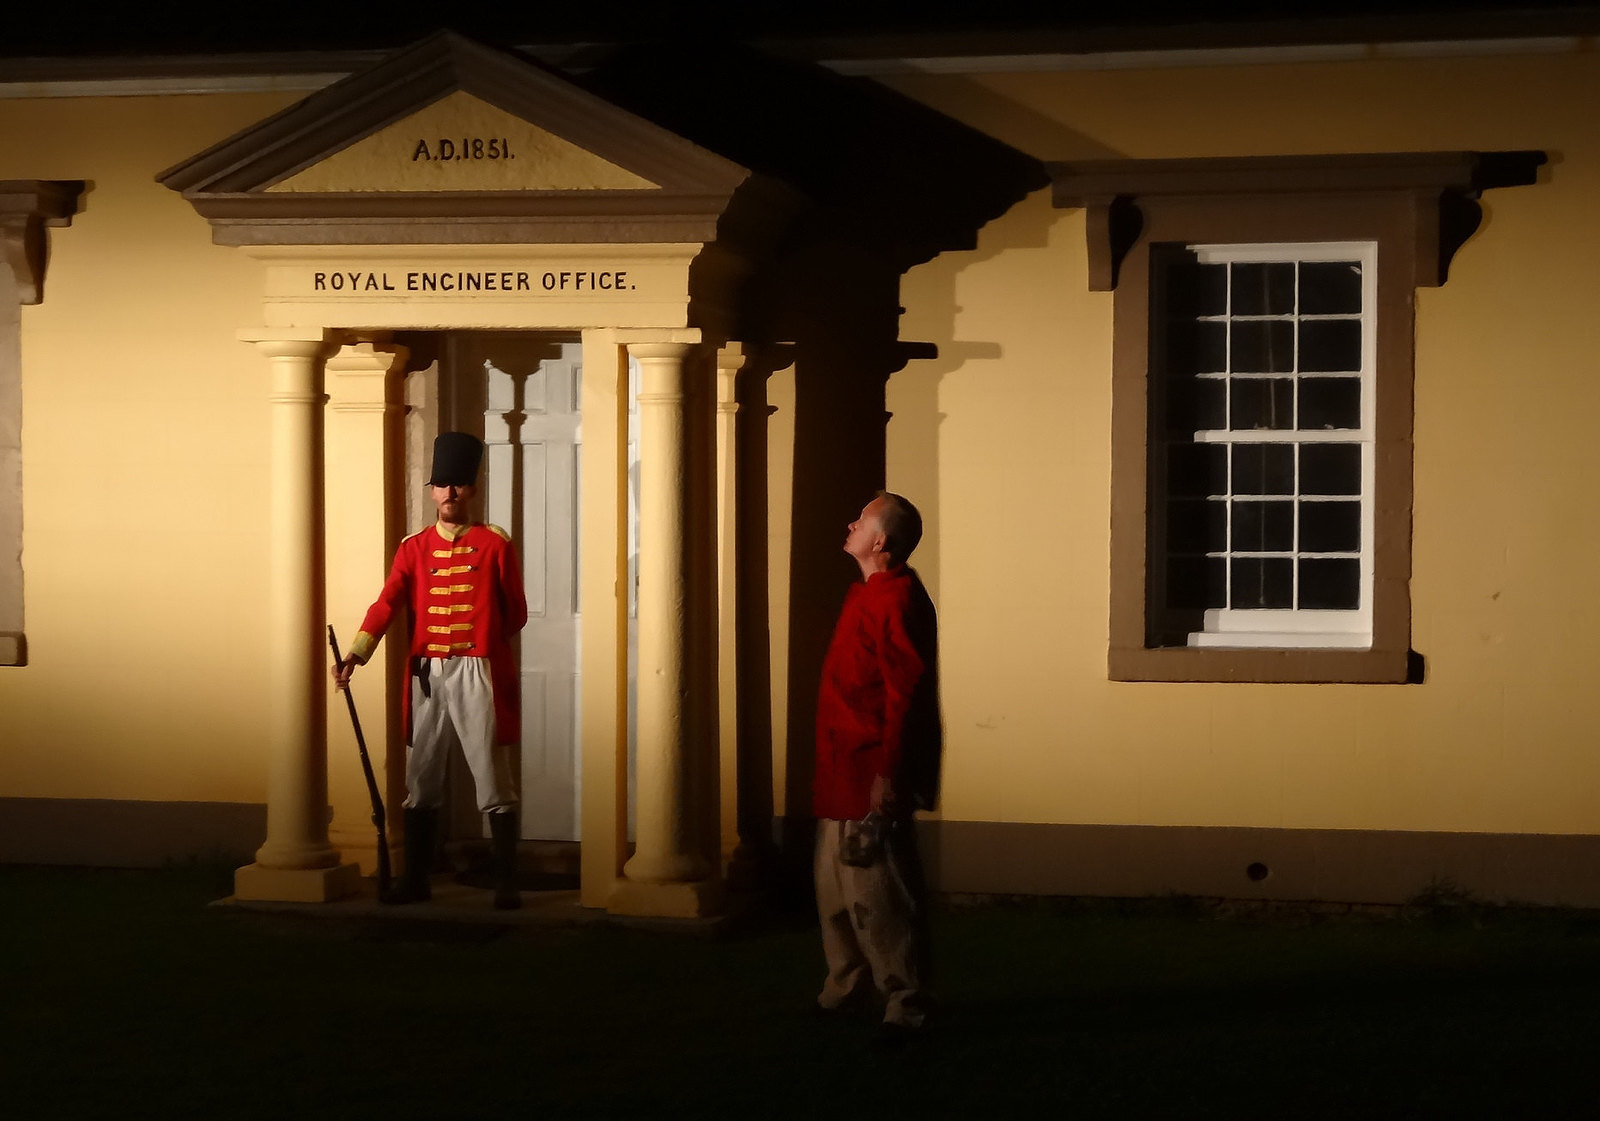 Sound and Light Show on Norfolk Island telling tales of the convict era. Image credit denisbin